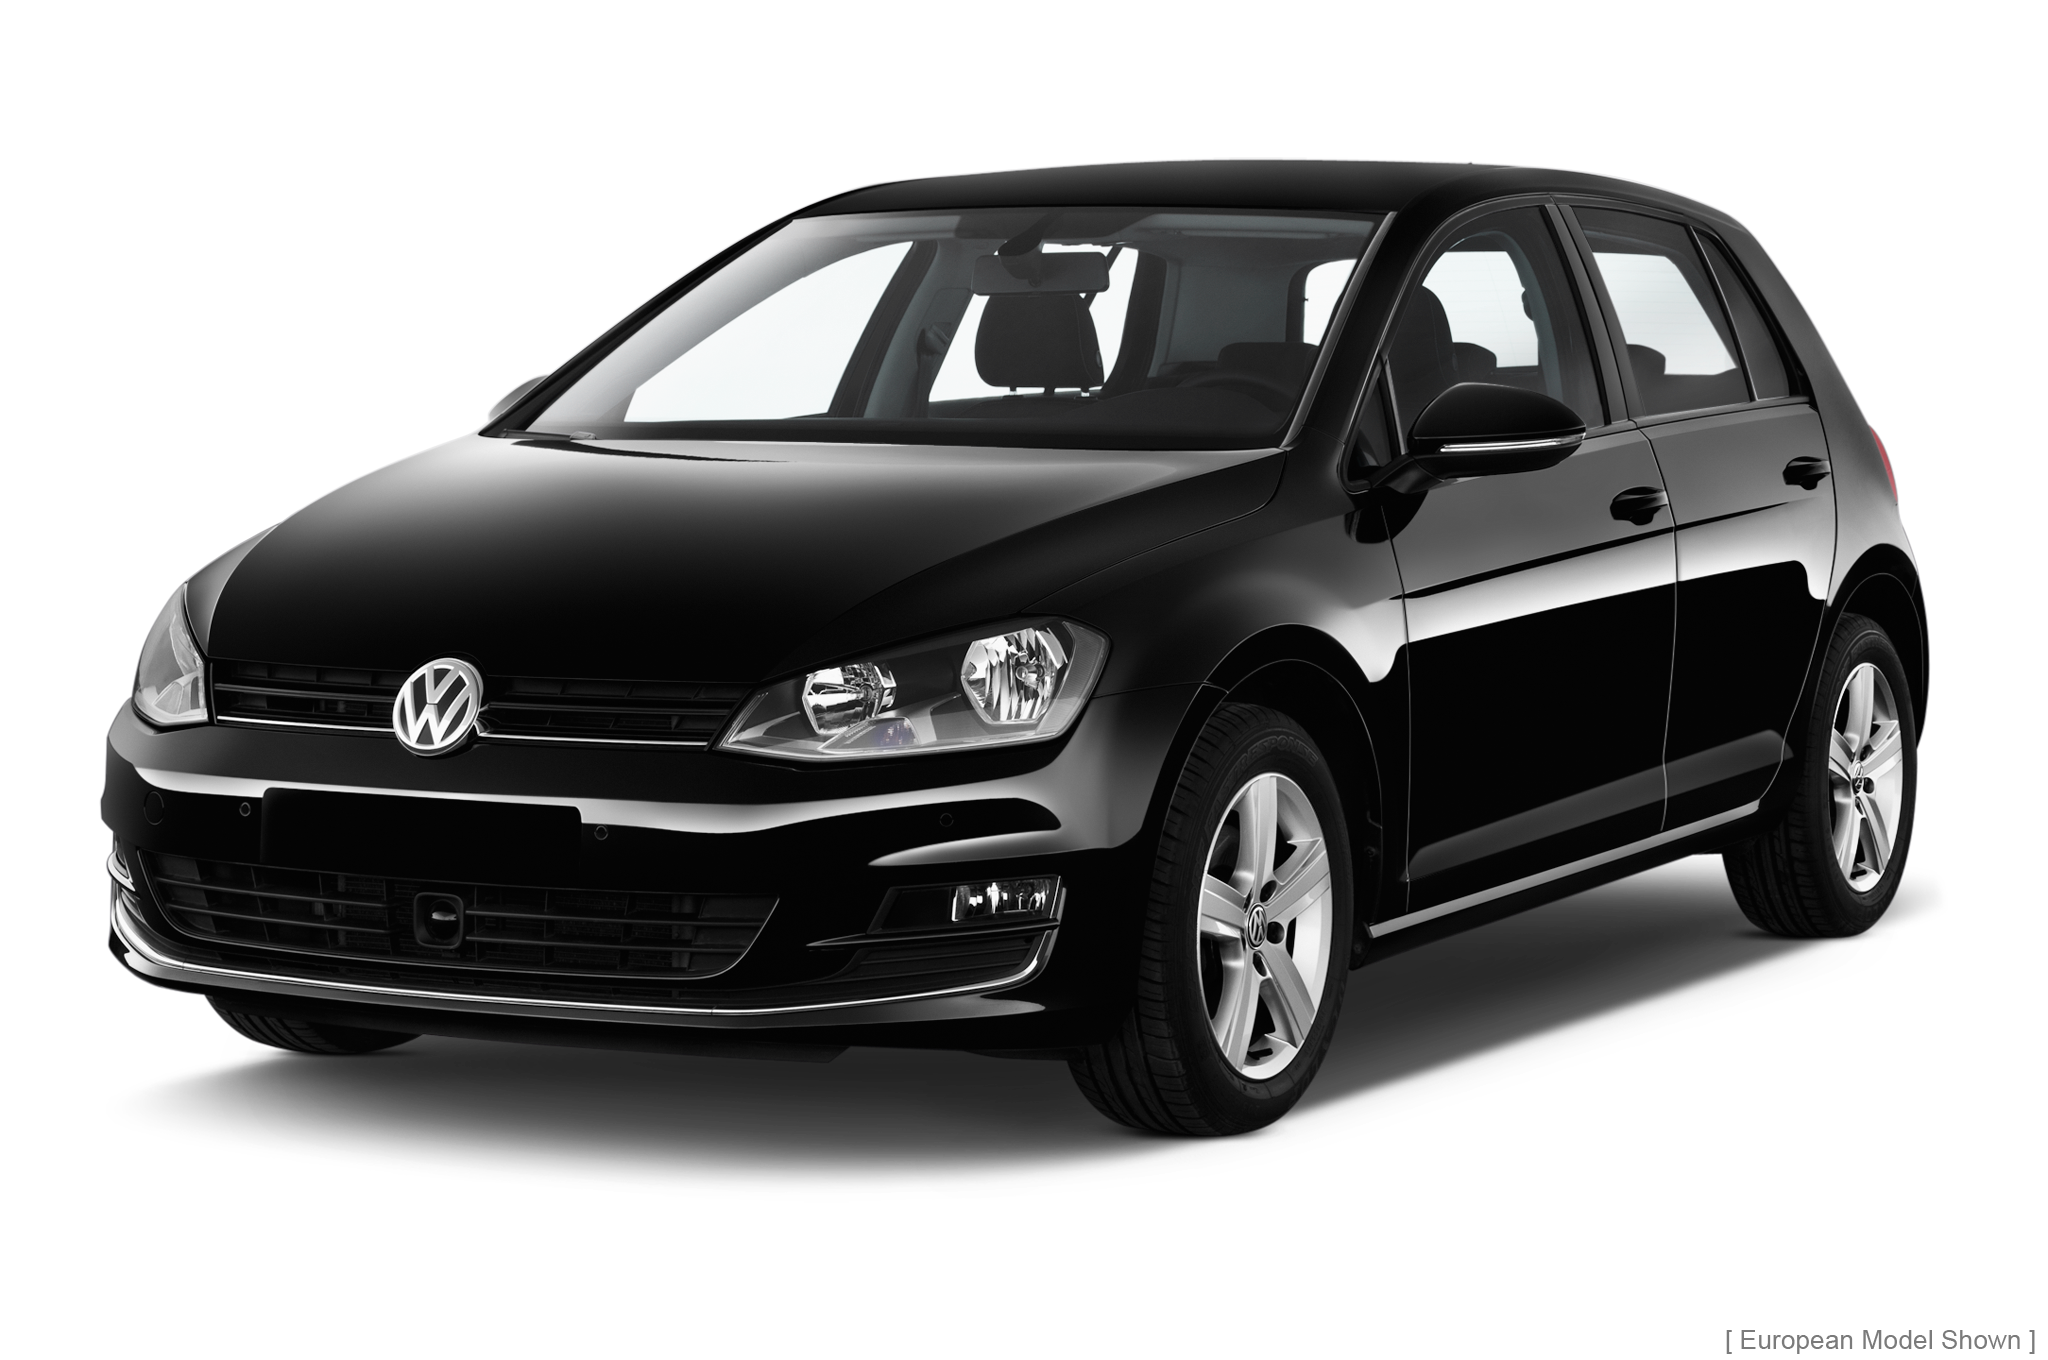 2014 volkswagen golf gtd first look automobile magazine. Black Bedroom Furniture Sets. Home Design Ideas